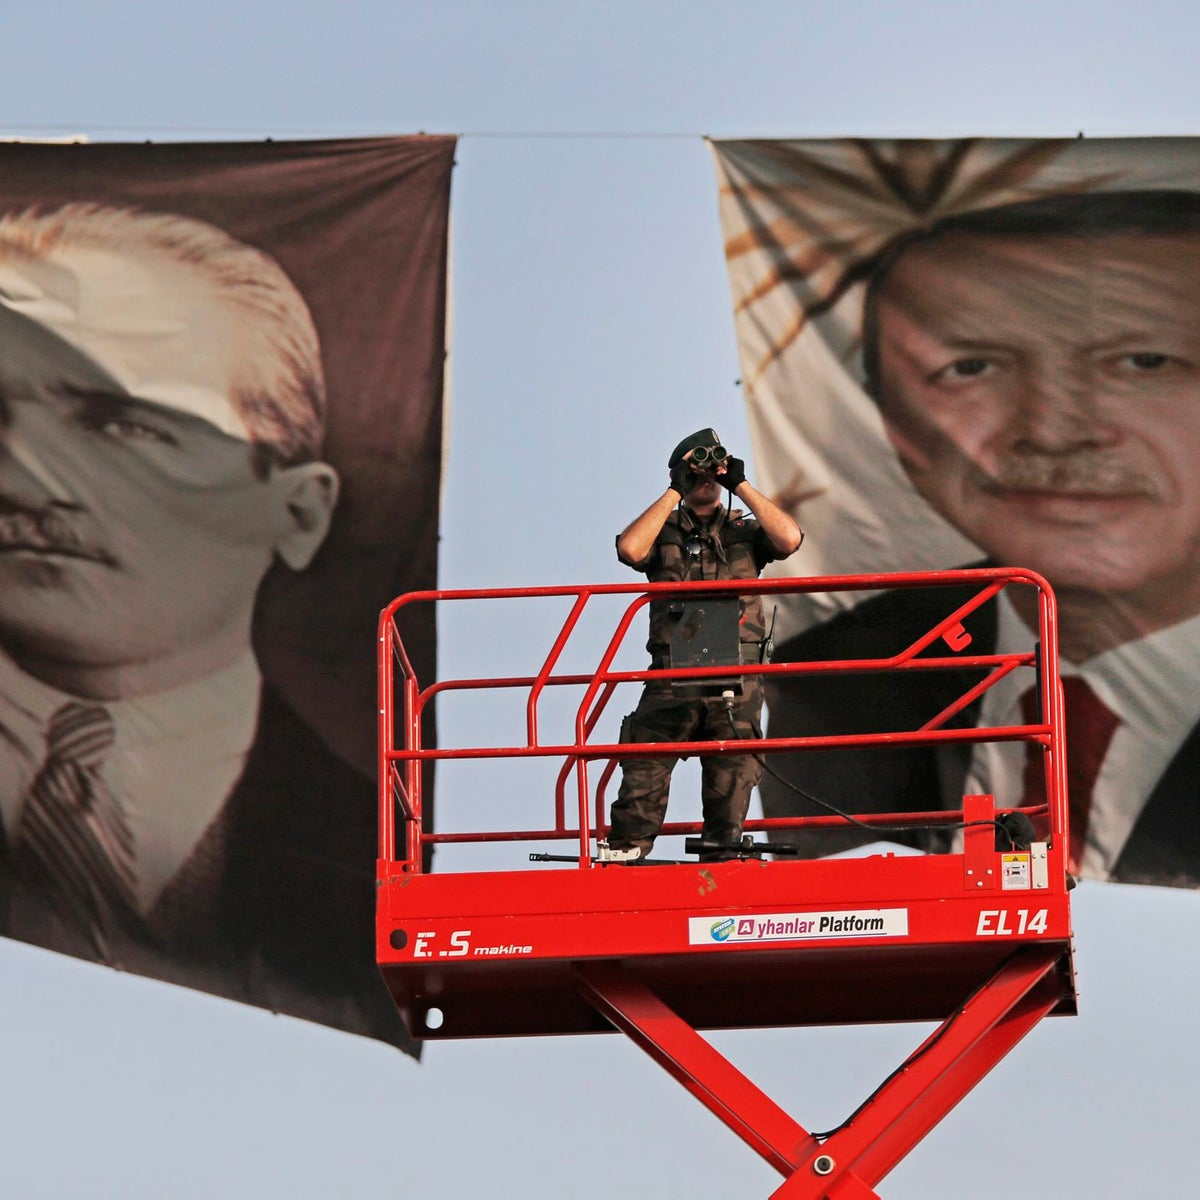 Posters of Turkish Republic founder Mustafa Kemal Ataturk, left, and Turkey's current President Recep Tayyip Erdogan